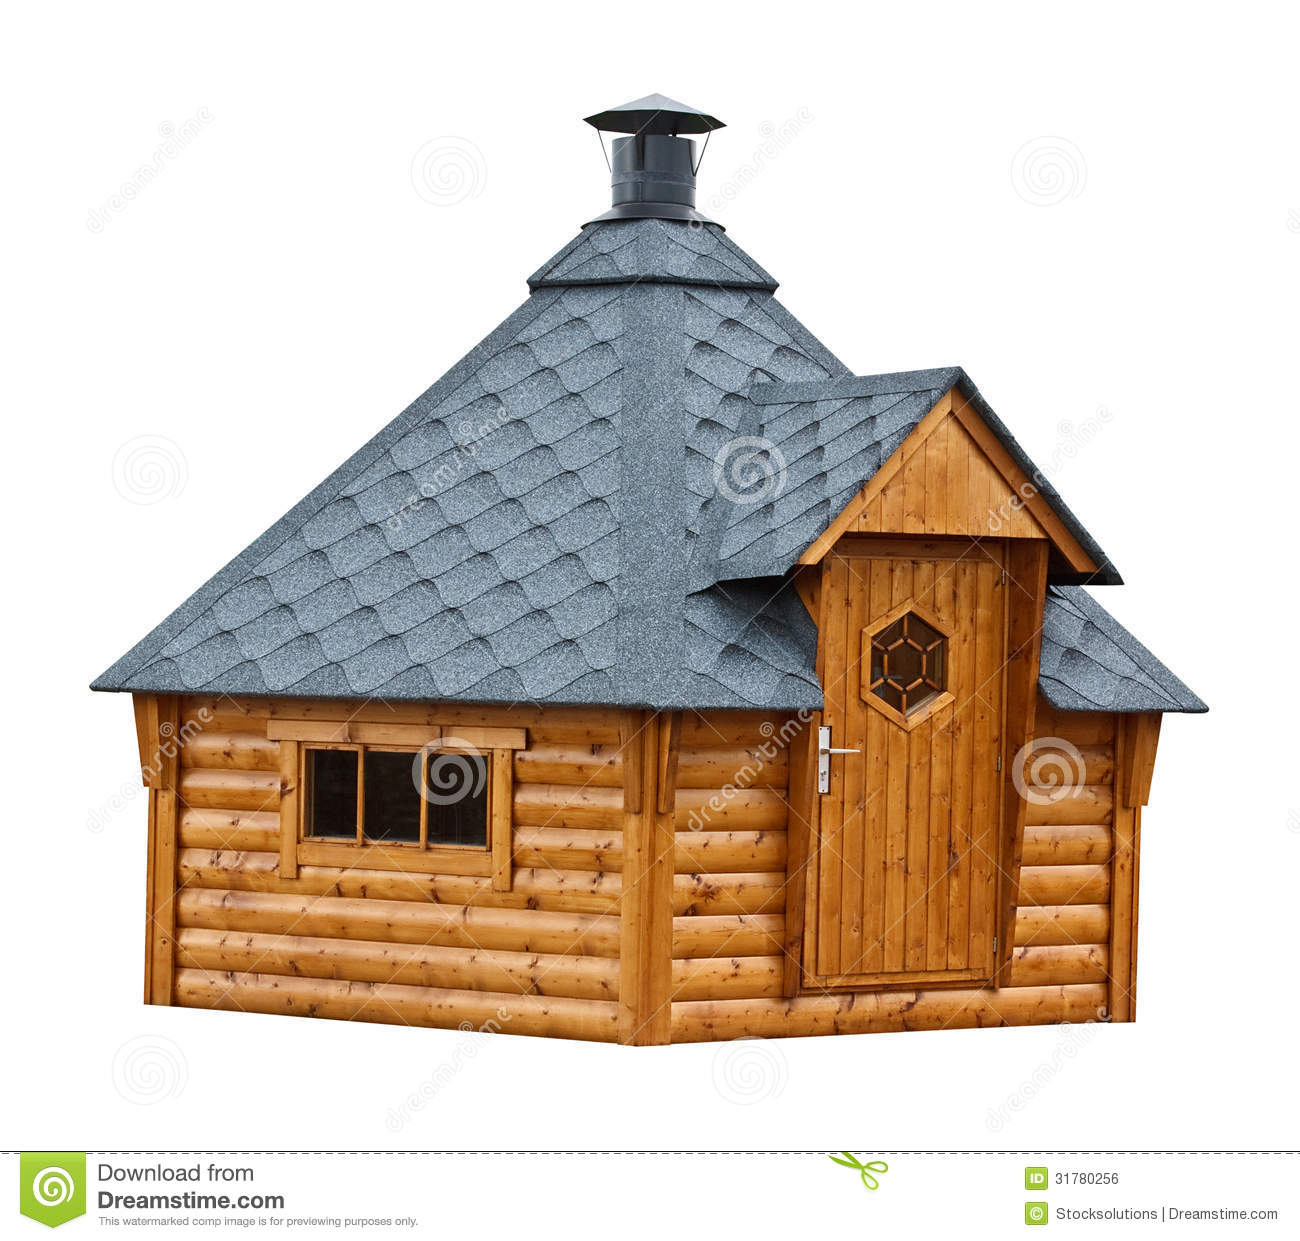 Timber Garden Sauna Building Royalty Free Stock Image